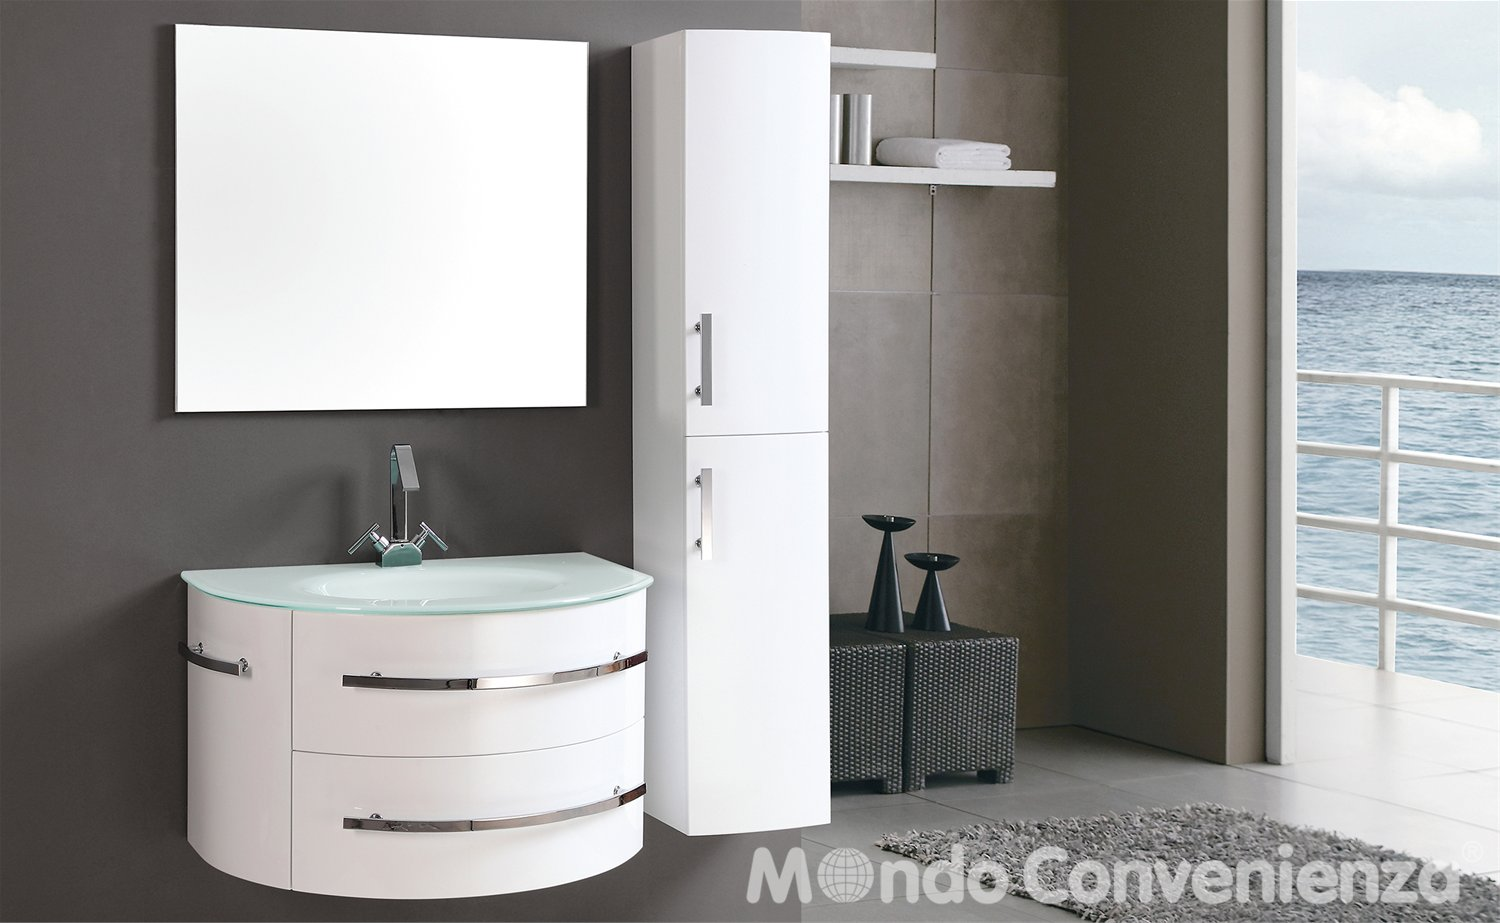 catalogo mondo convenienza 2013 (18)  Design Mon Amour